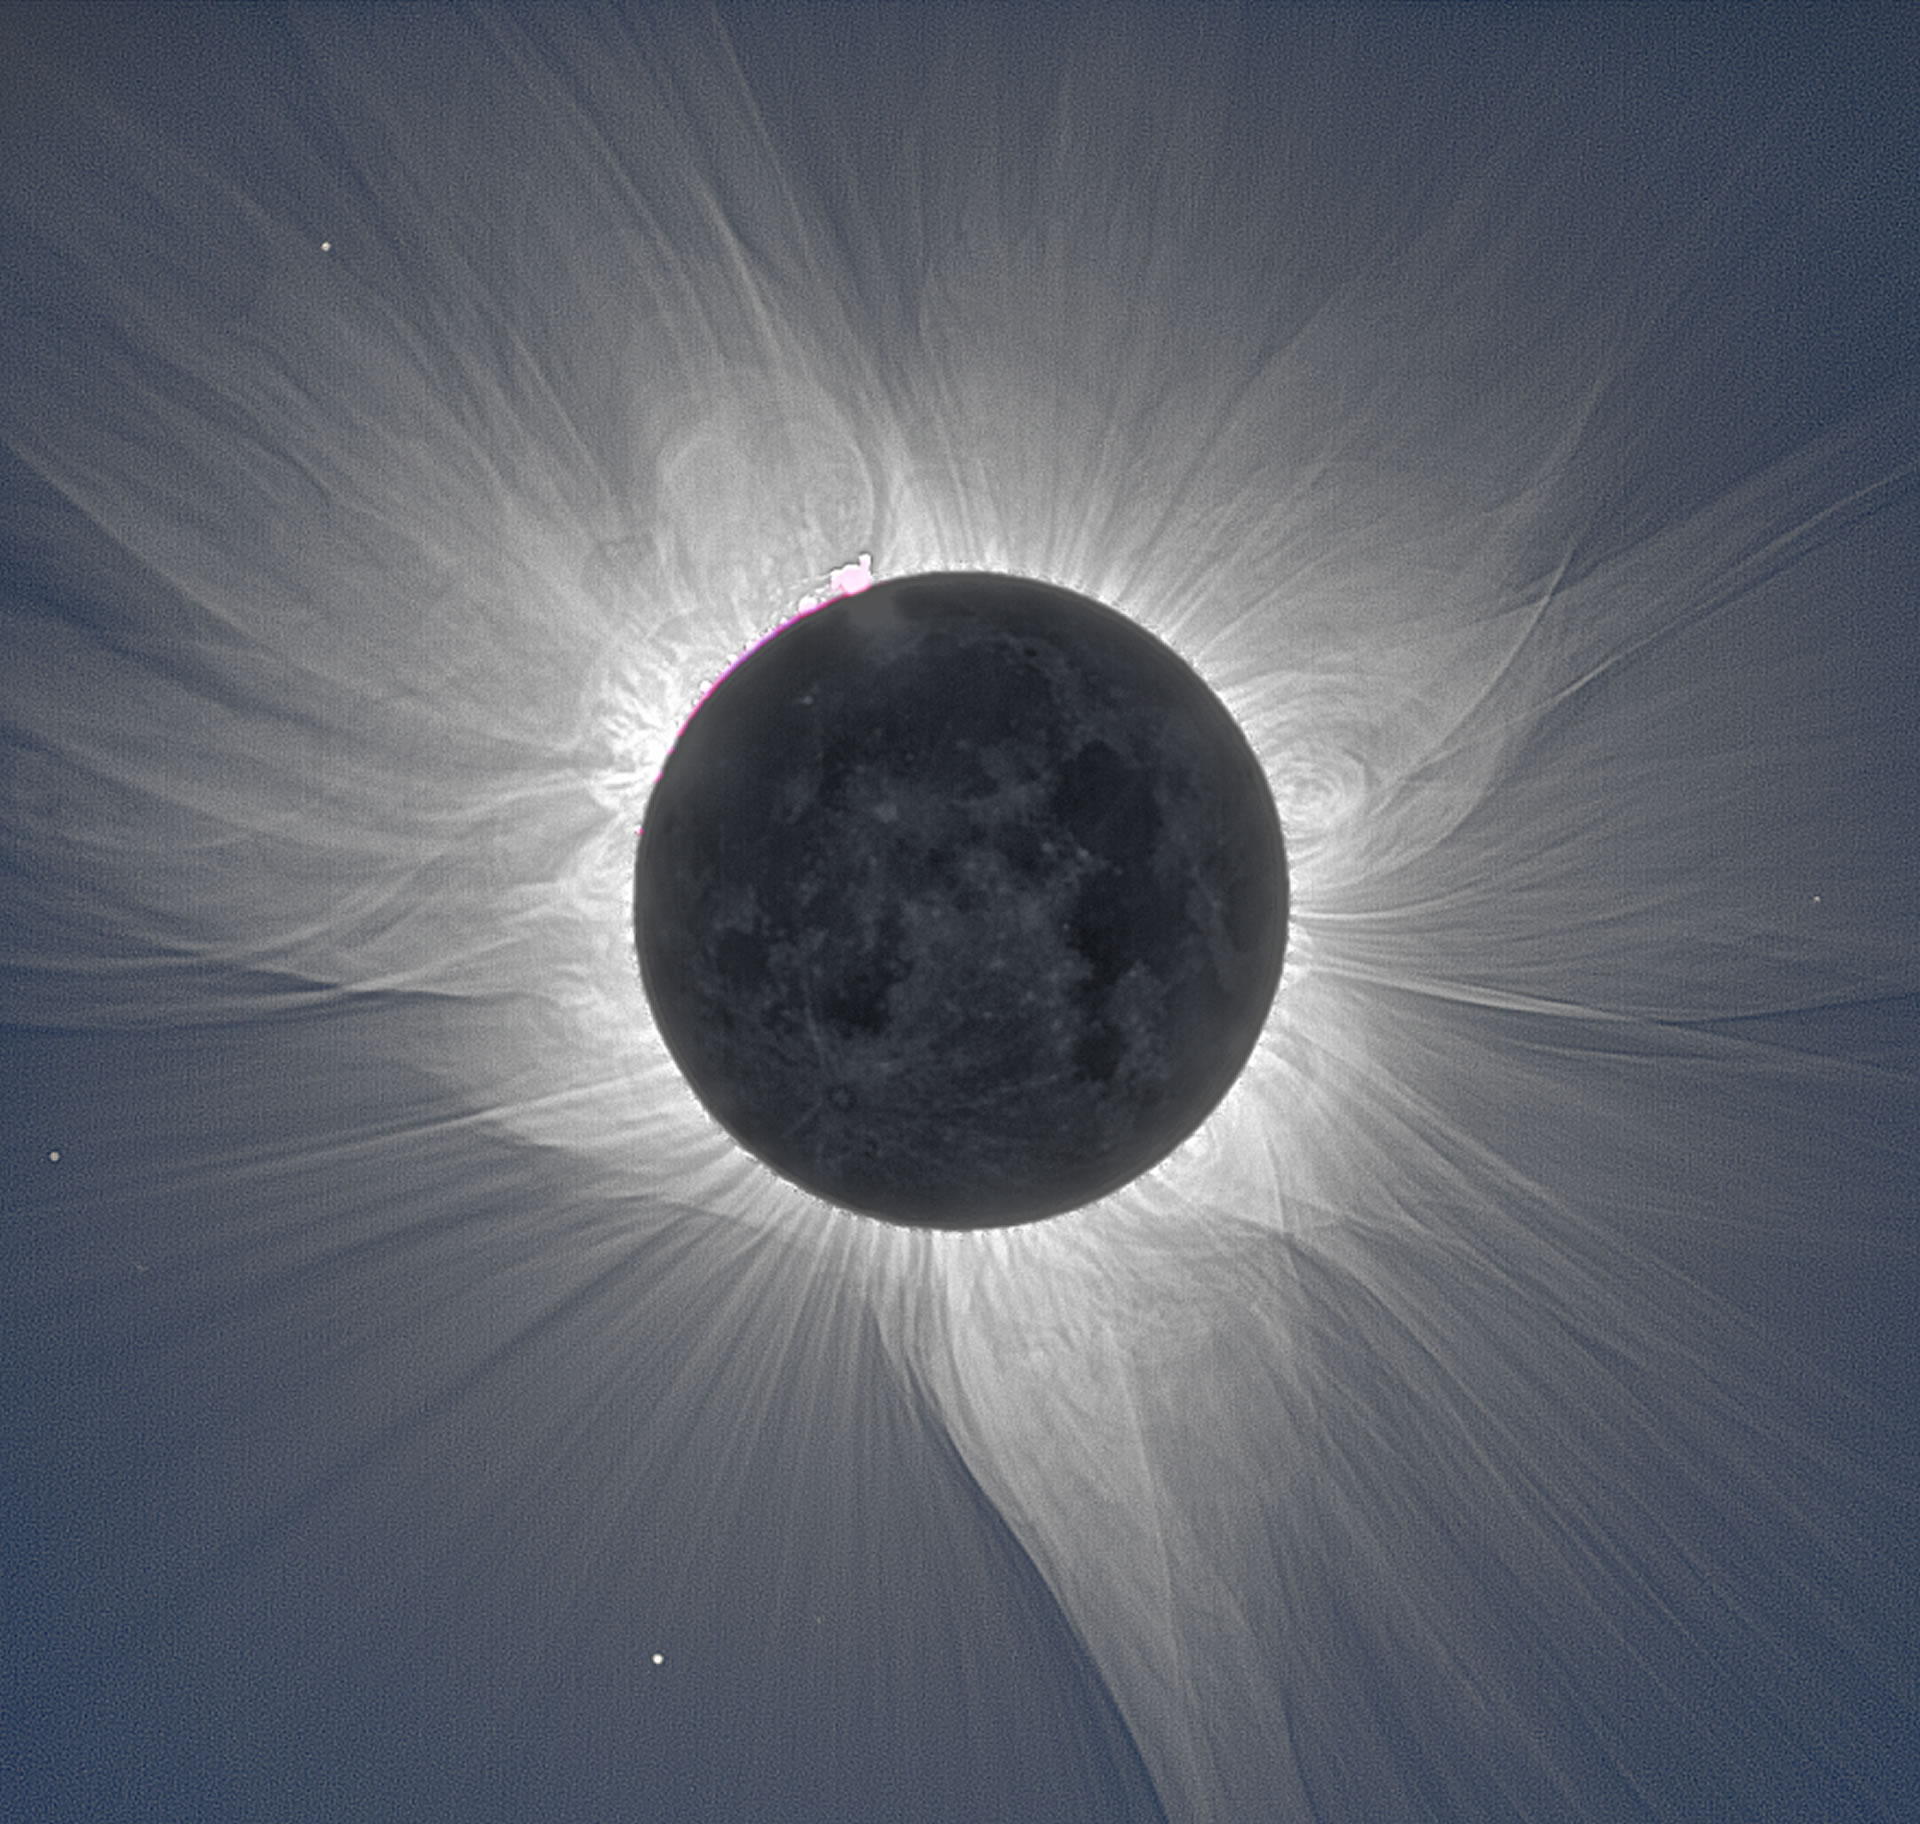 Solar corona image taken during the eclipse over Bangka Island in Indonesia September 3, 2016. Credit Miloslav Druckmüller. Copyrighted images used with permission.